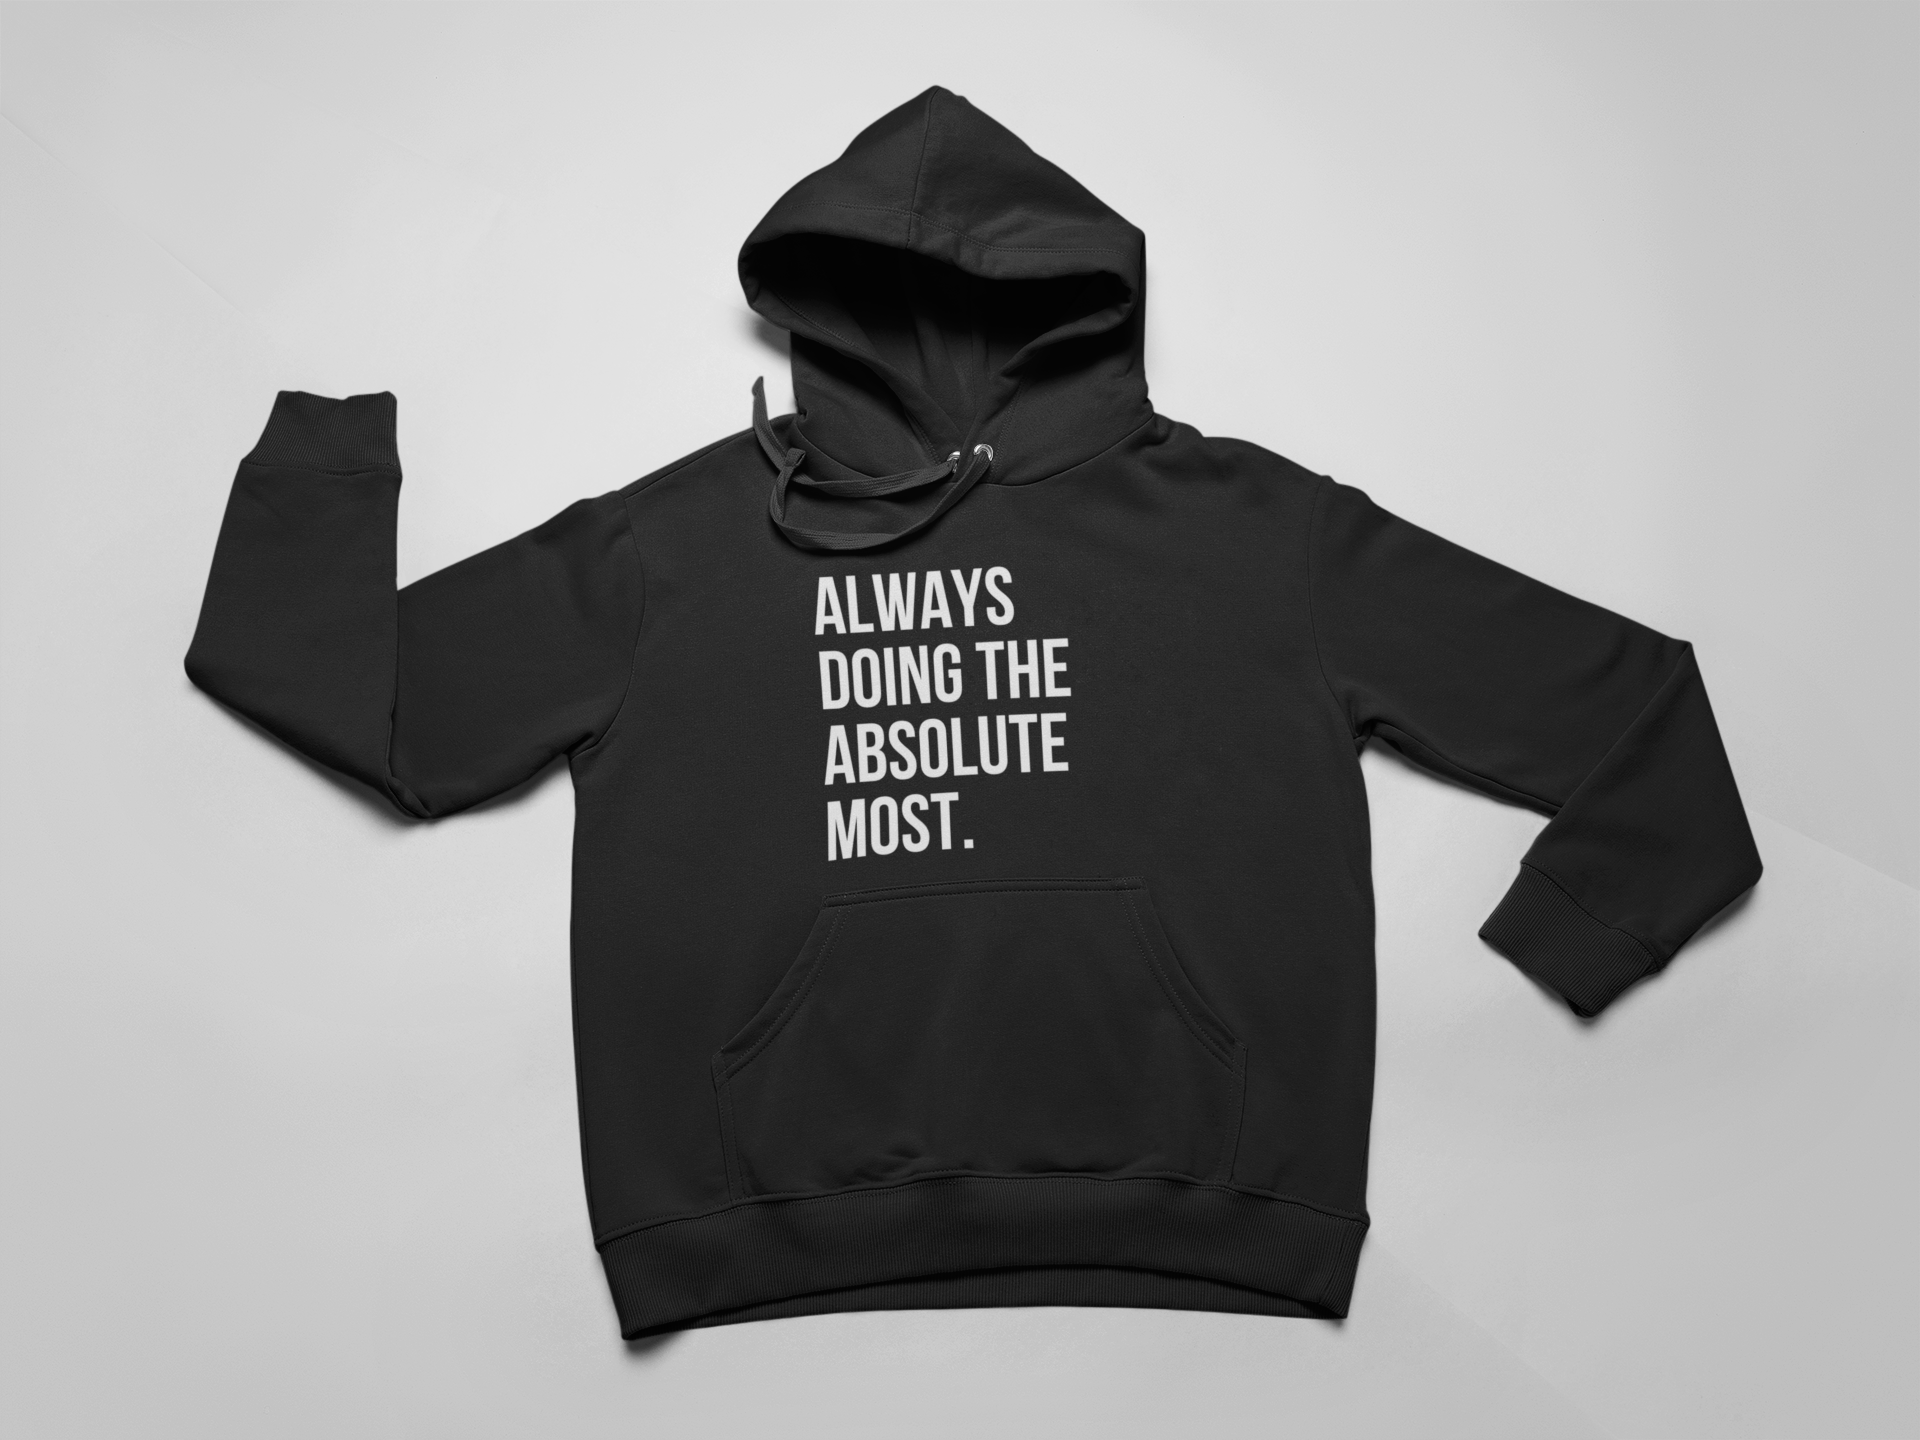 The Most Hoodie